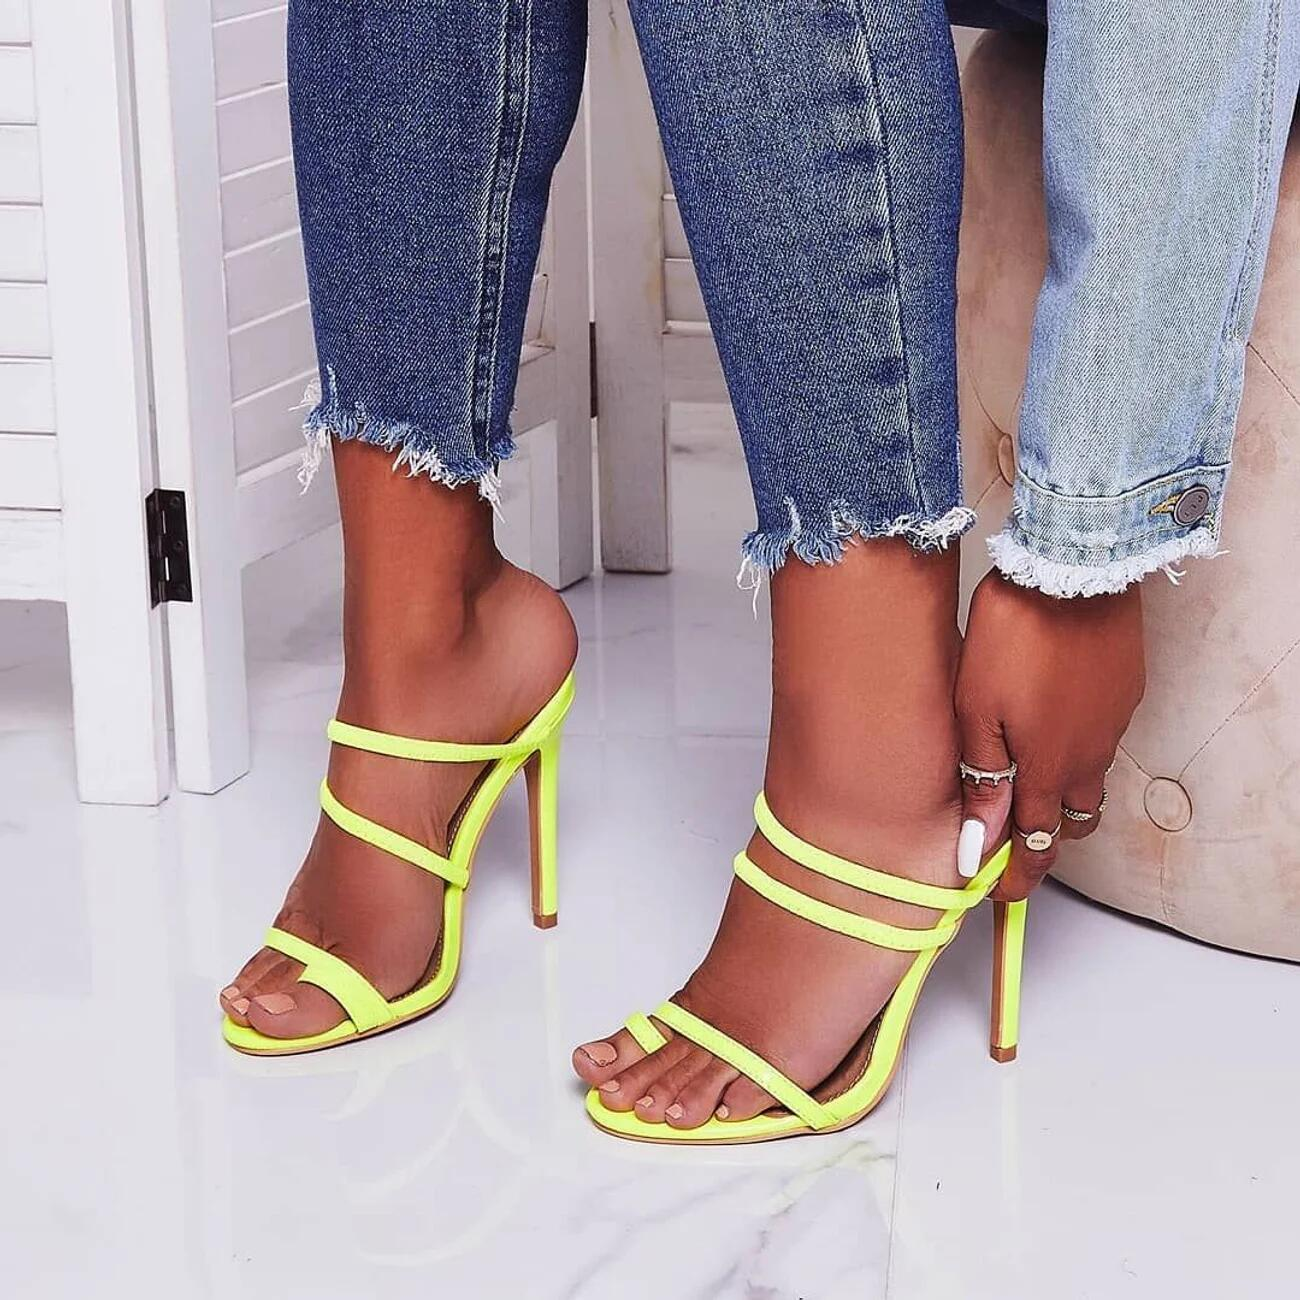 Slippers Sandals Hollow-Shoes High-Heeled Summer Women New 35-40 Toe Thin Flop Slides